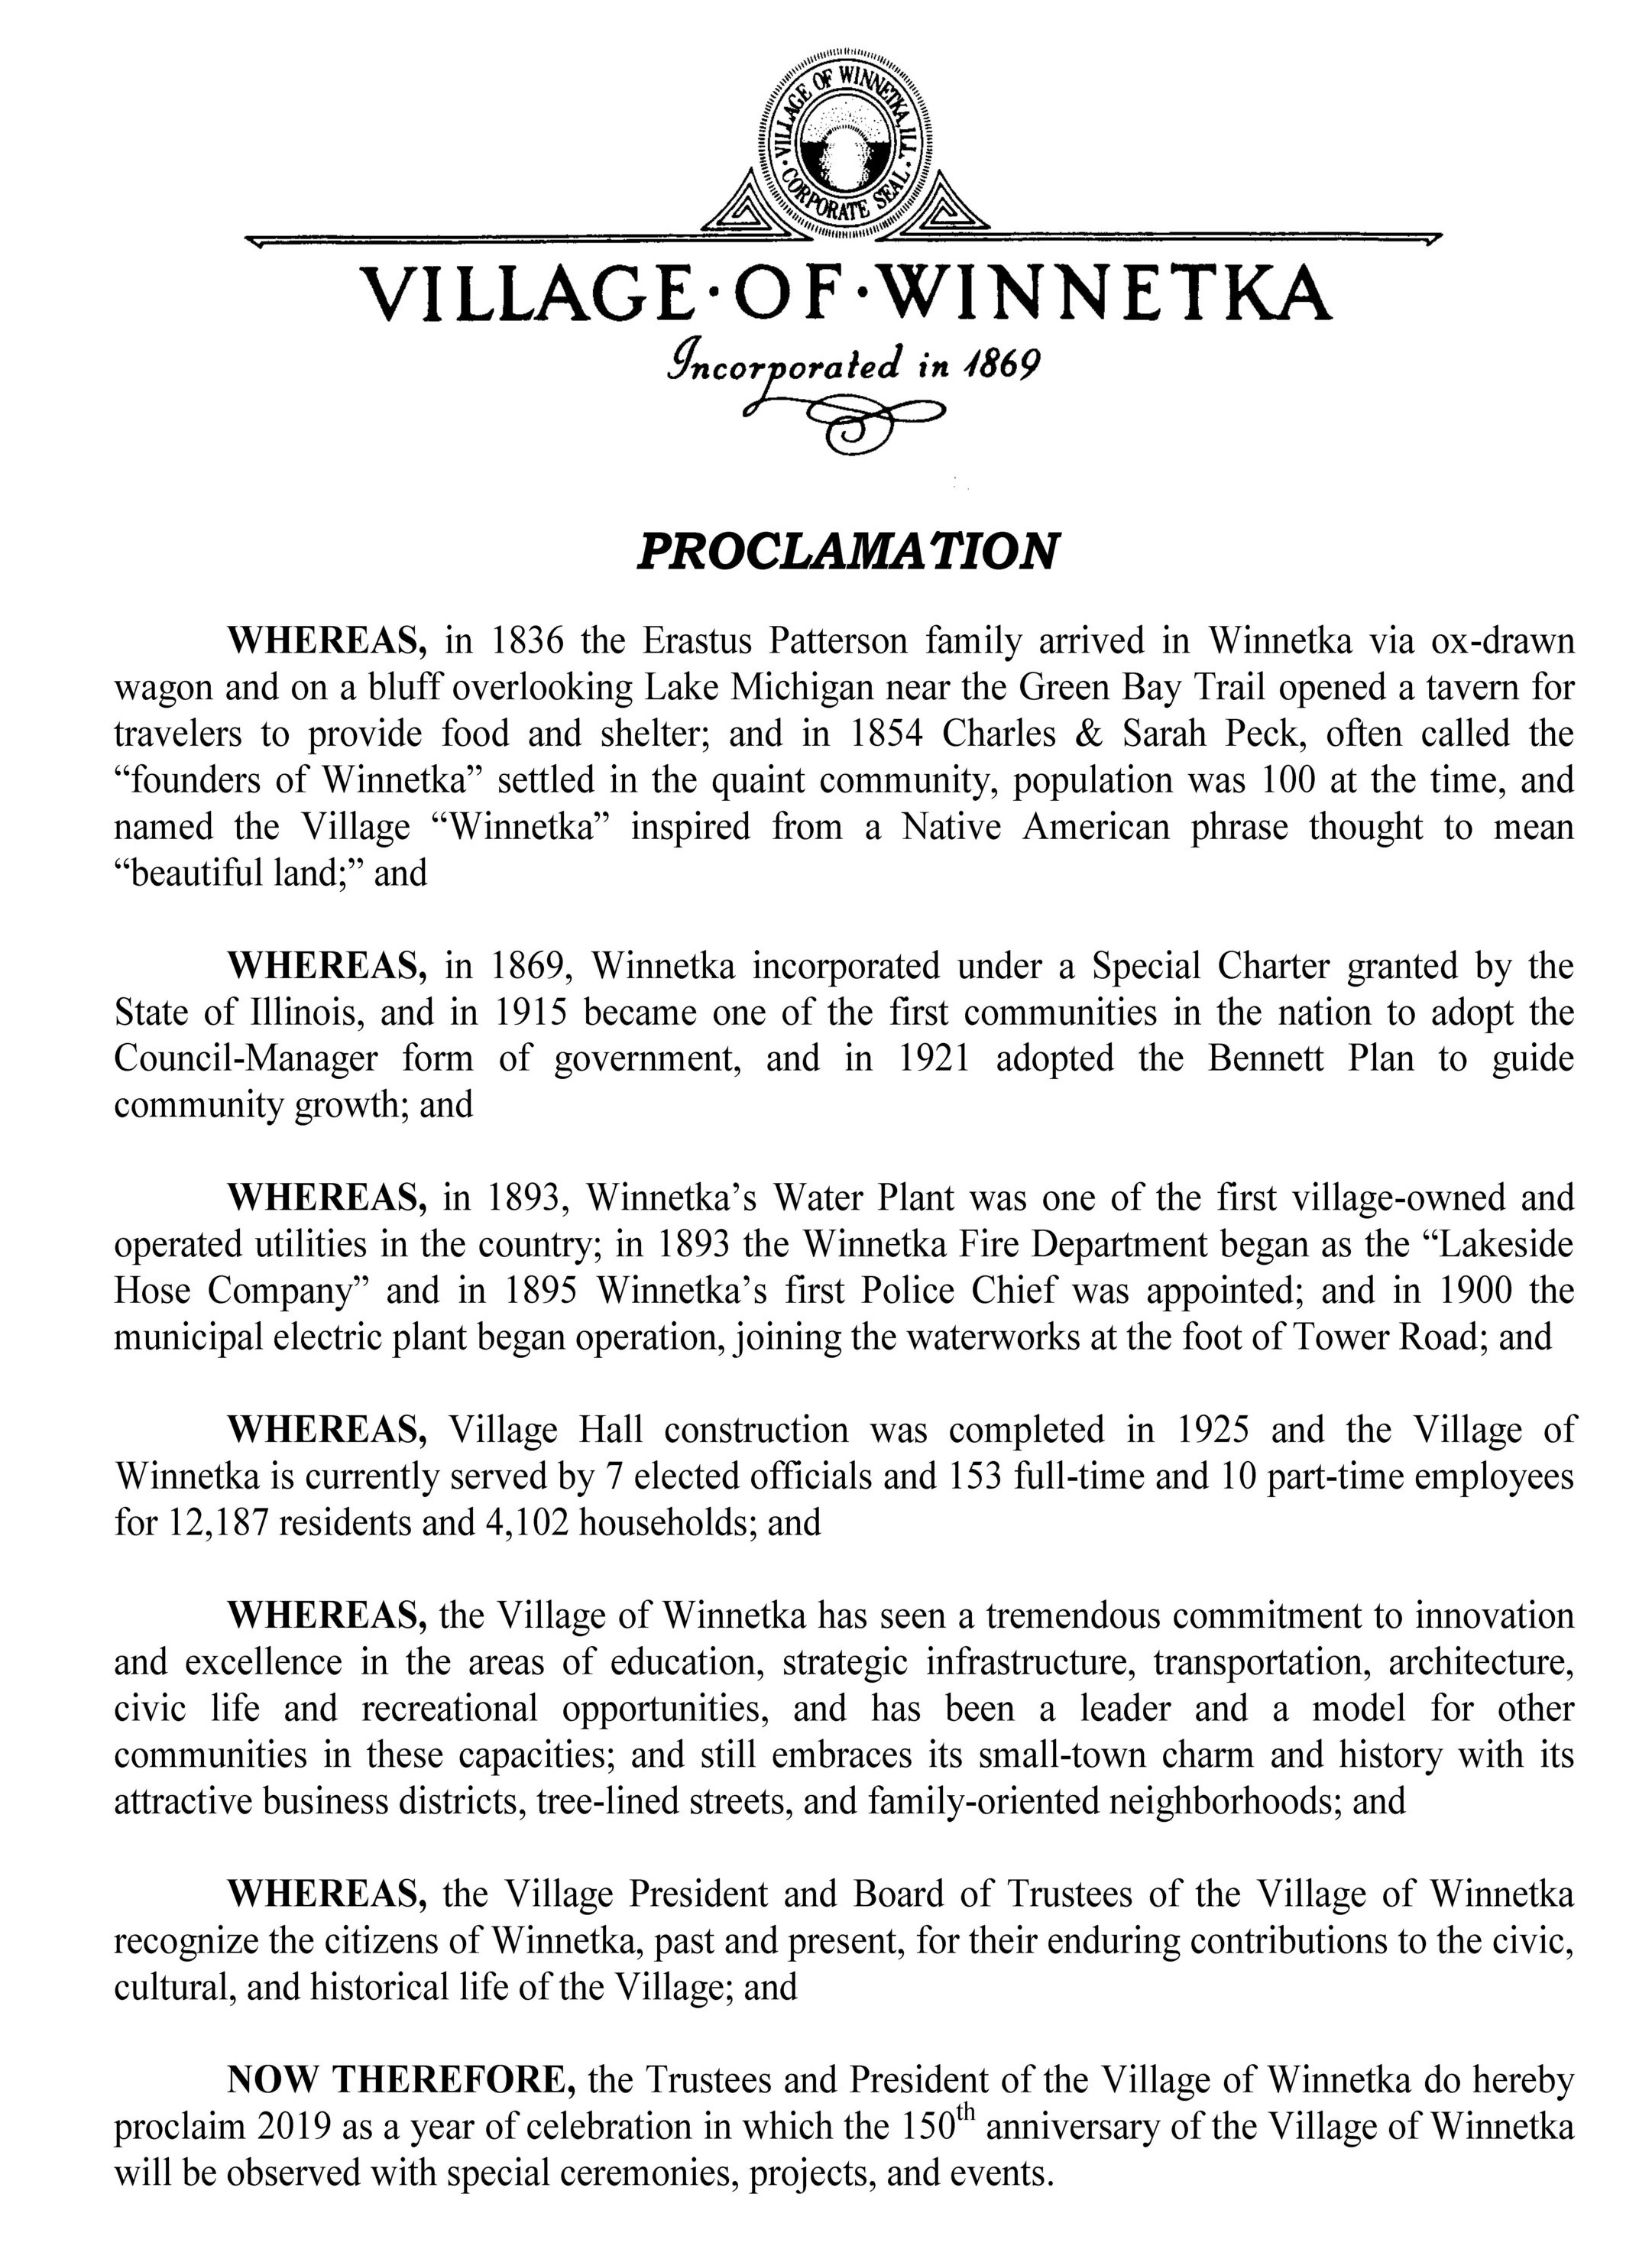 Winnetka+Sesquicentennial+Proclamation+2018+1204-FINAL.jpg